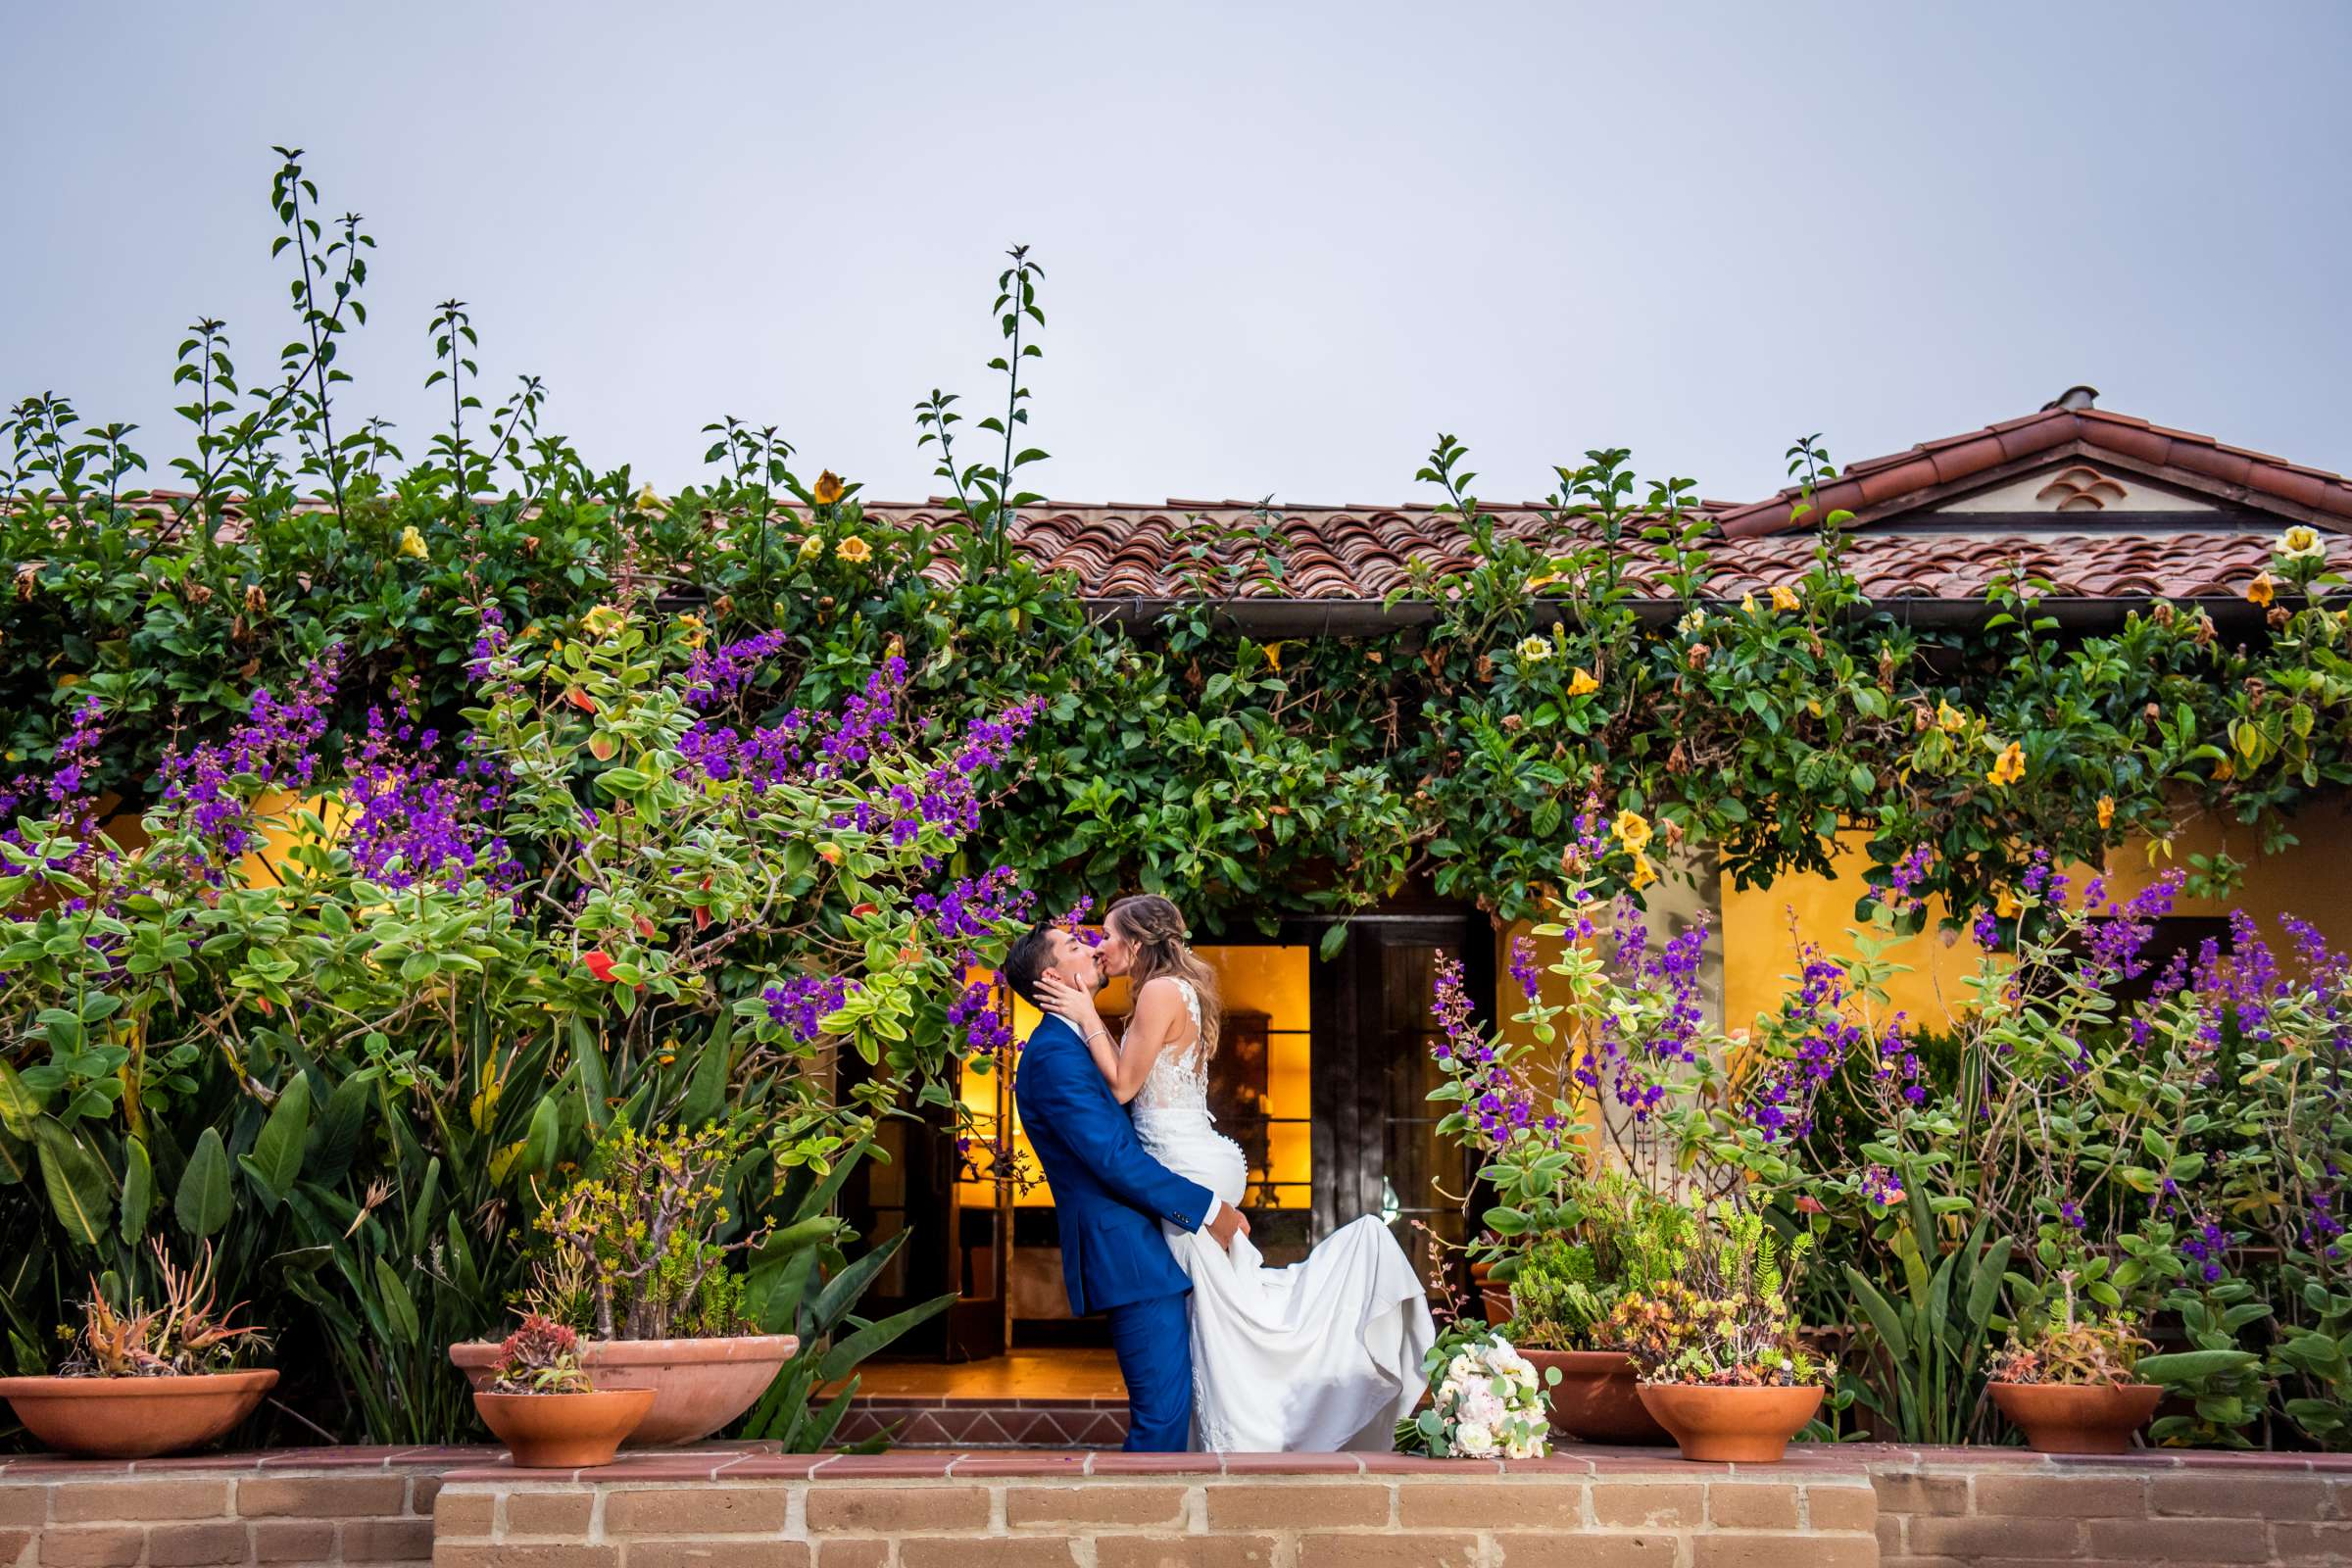 Estancia Wedding coordinated by Mireya & Co, Kelly and Vlad Wedding Photo #1 by True Photography